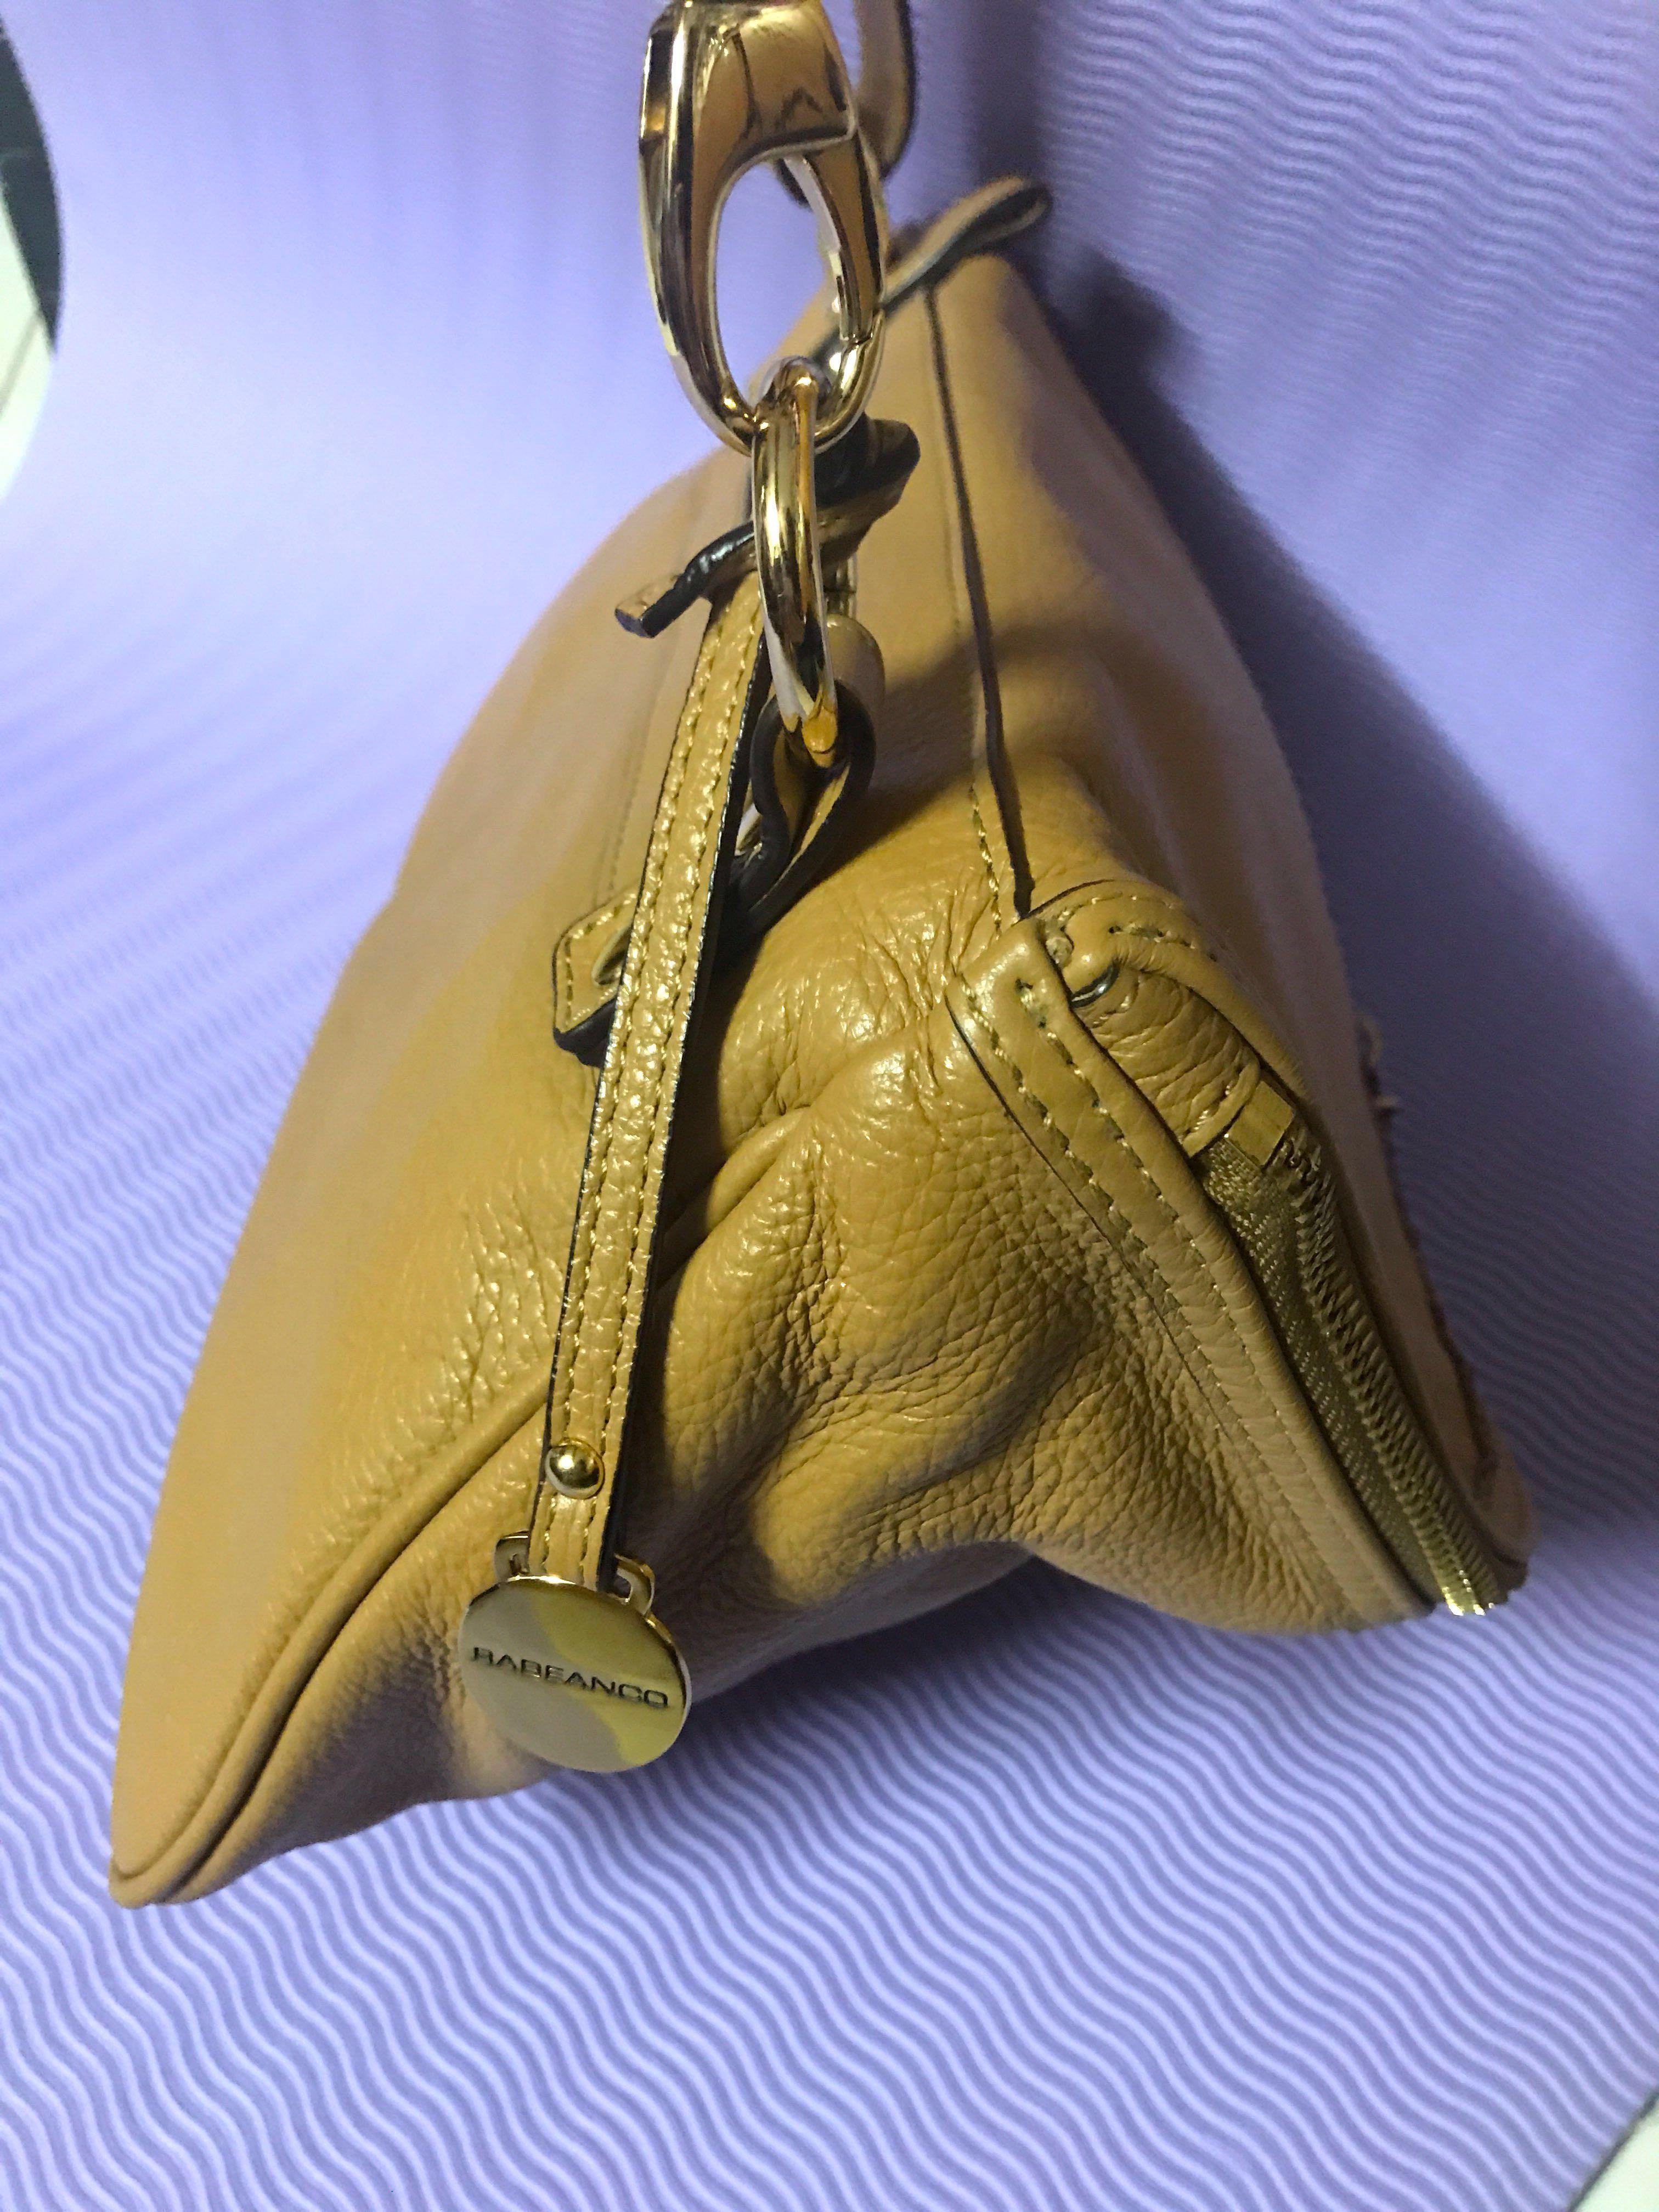 Rabeanco Leather Handbag / Clutch with Detachable Shoulder-strap; Shade: Camel